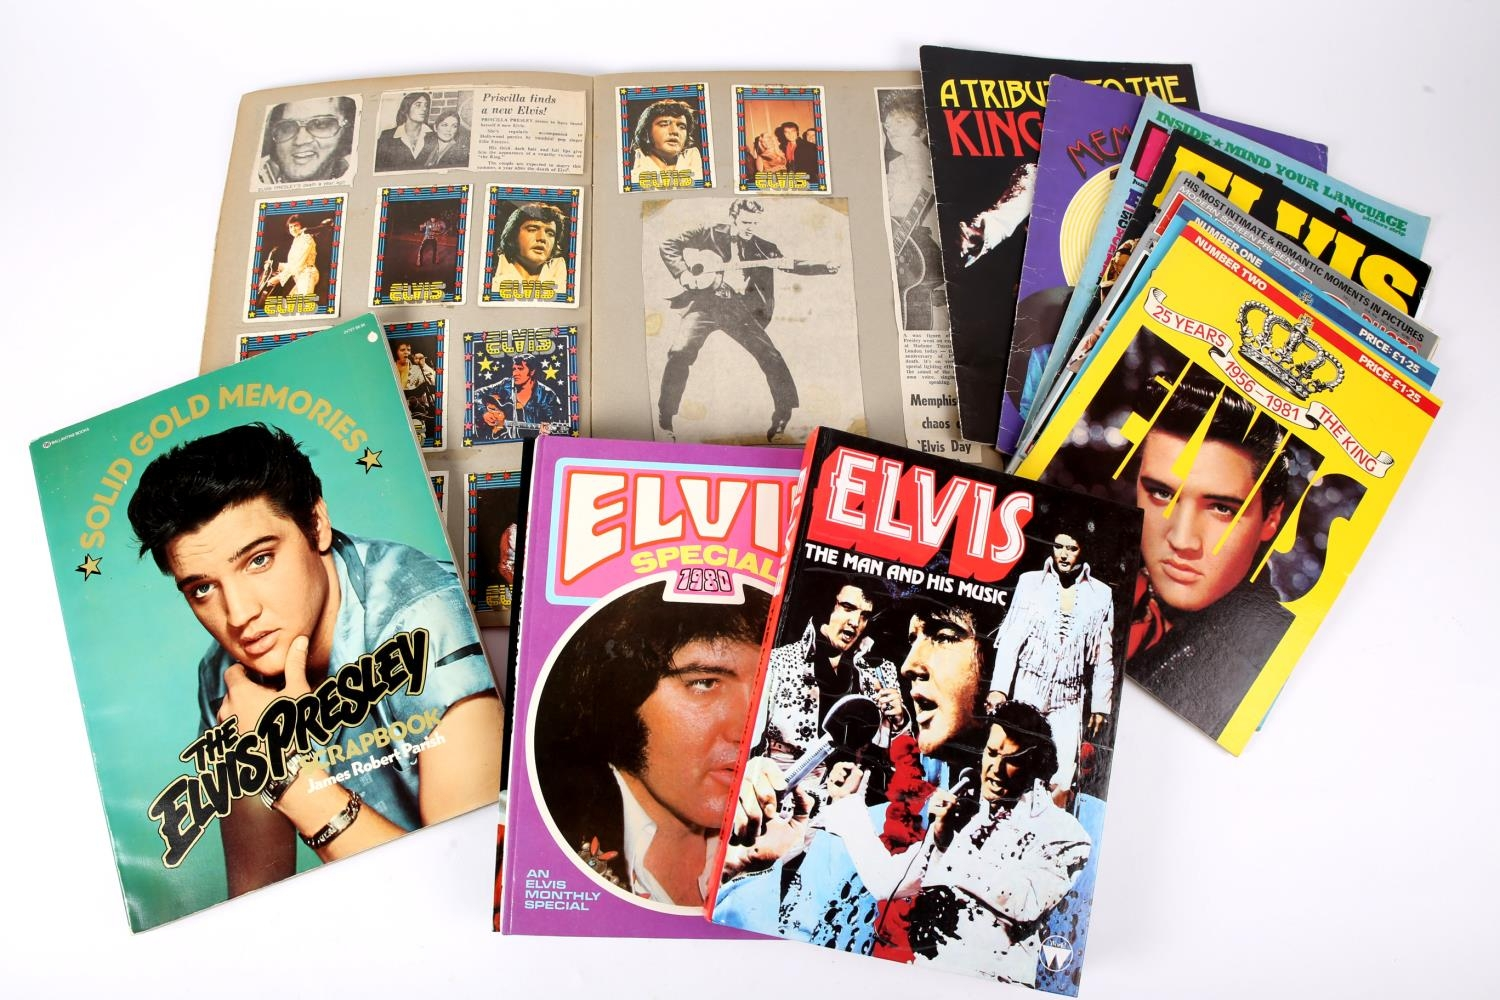 Elvis Presley. A collection of annuals and magazines about Presley together with a scrapbook